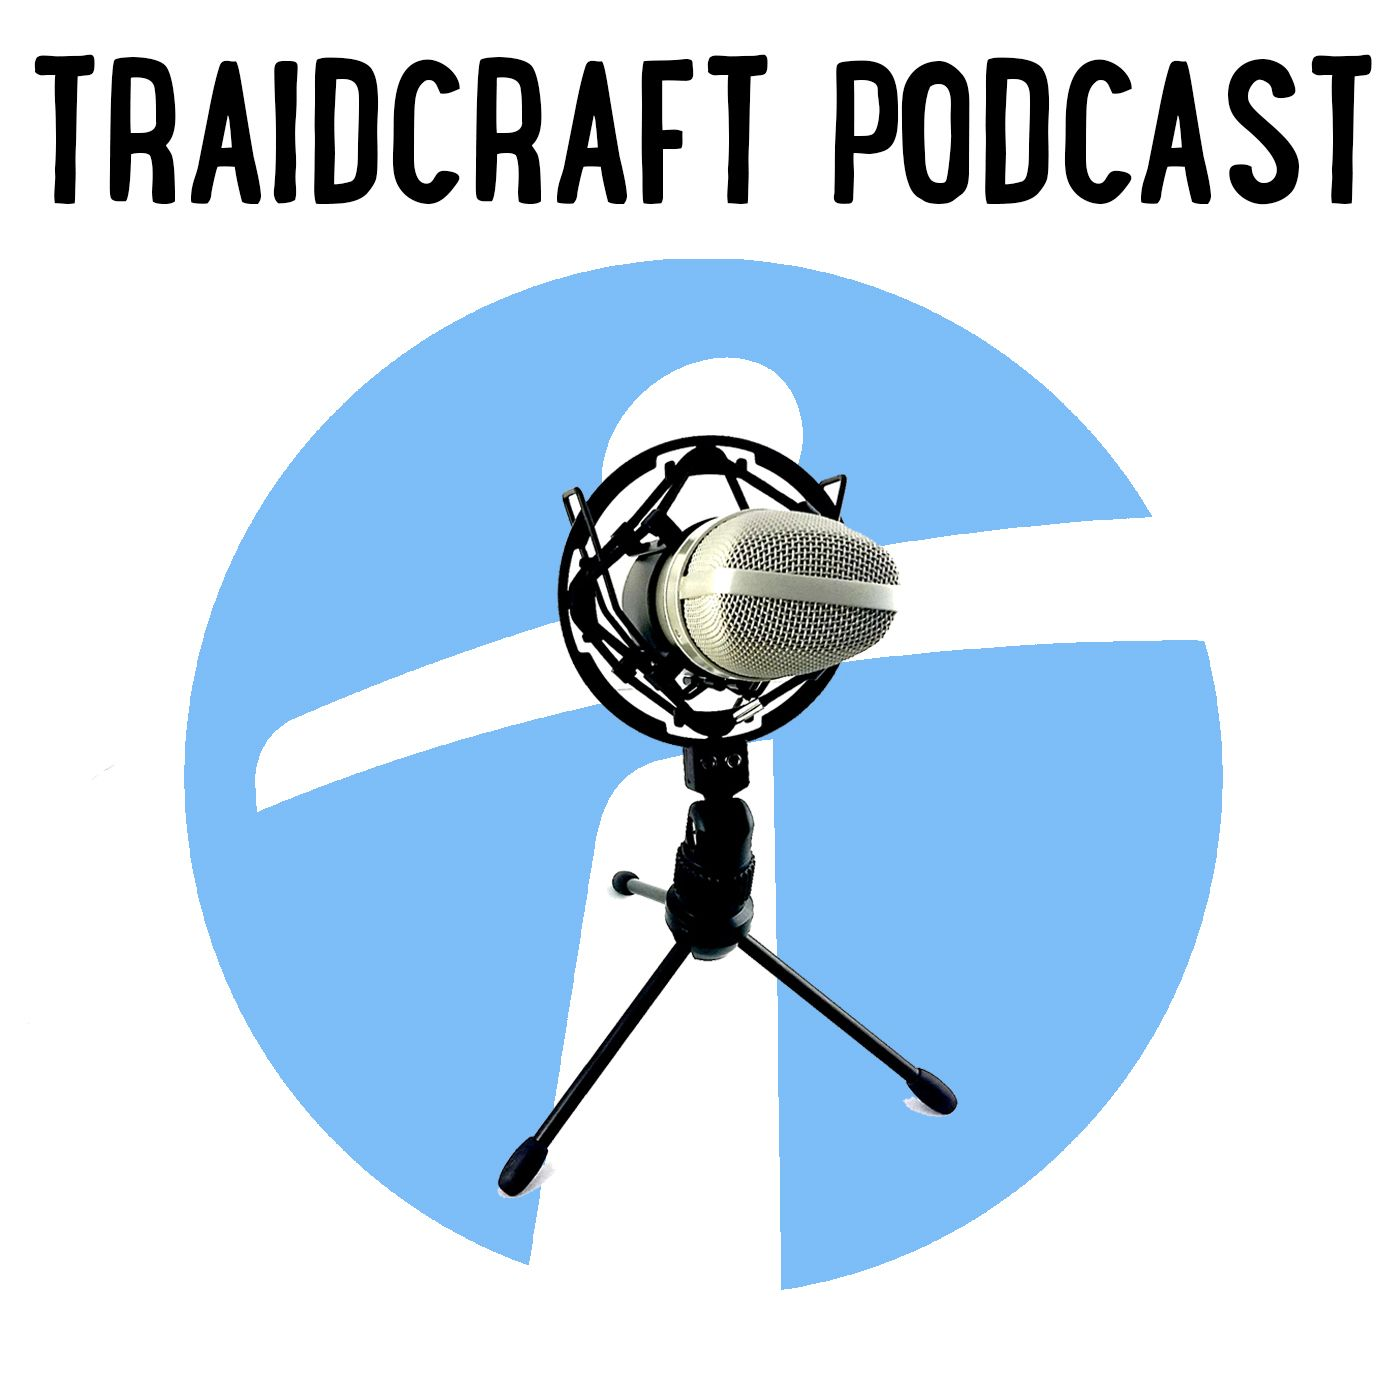 The Traidcraft Podcast